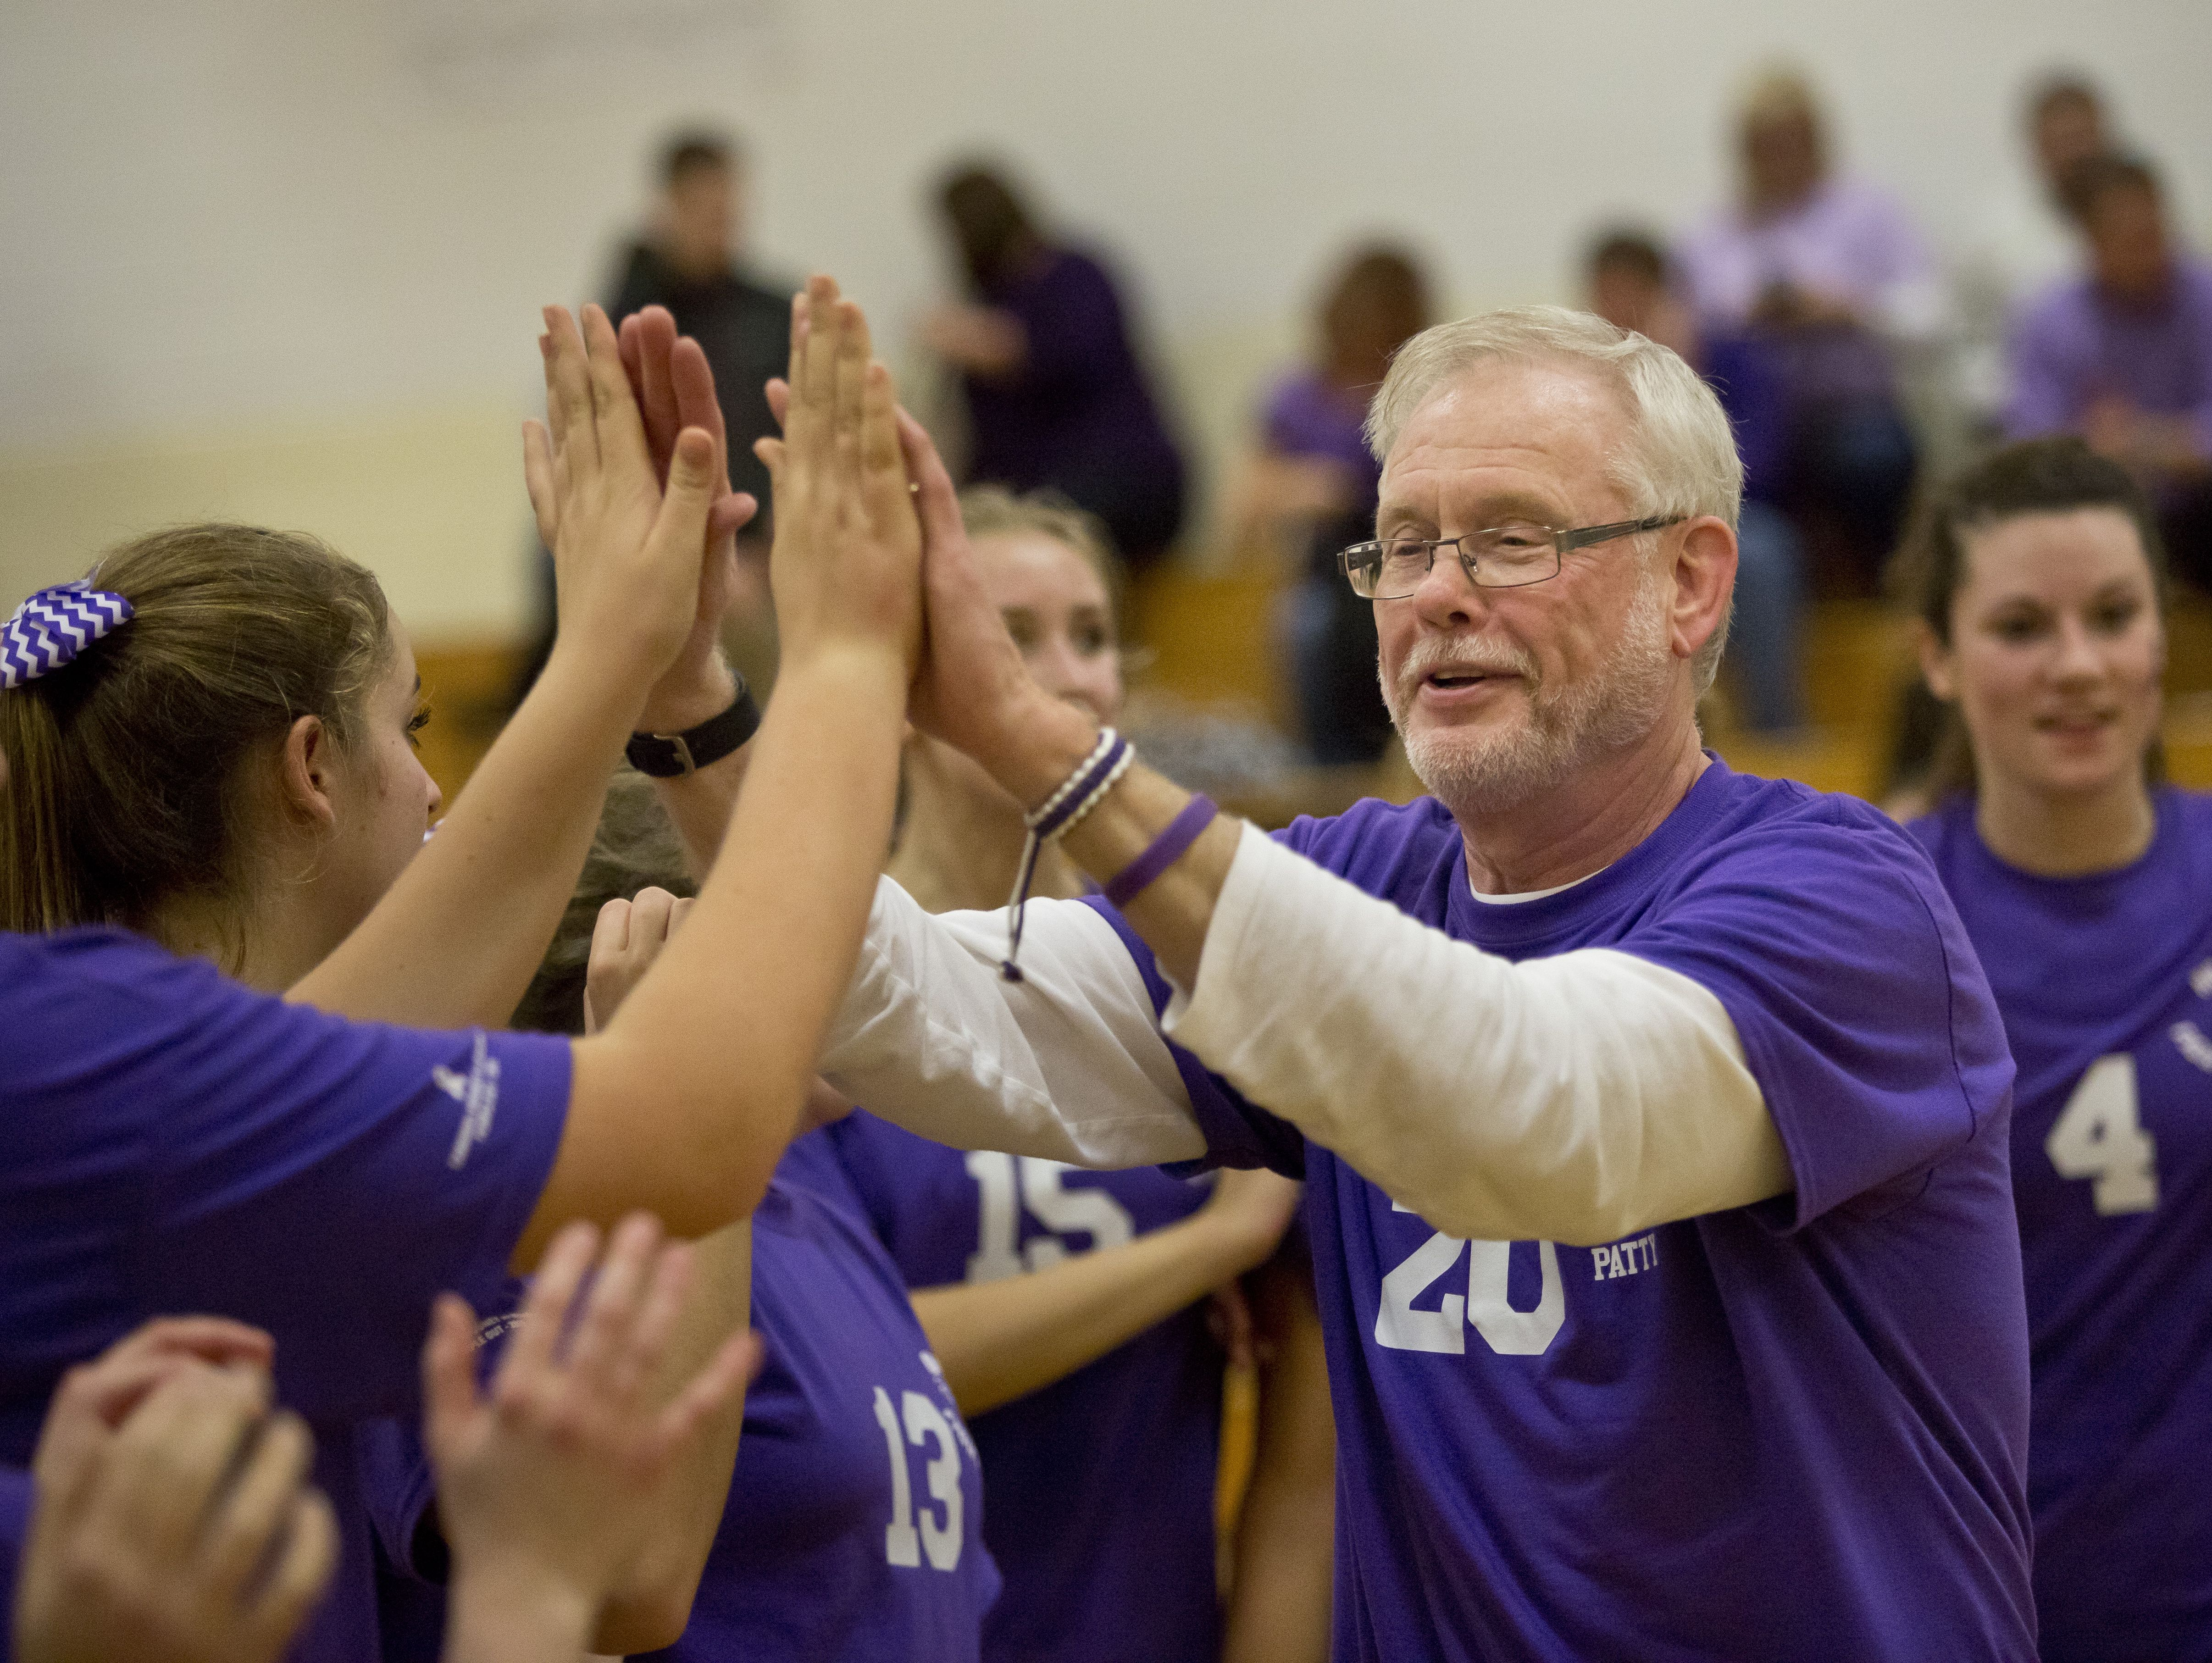 Cardinal Mooney coach Dennis Caulfield claps hands with players after they beat Regina in a volleyball game Wednesday, October 28, 2015 at Cardinal Mooney High School.